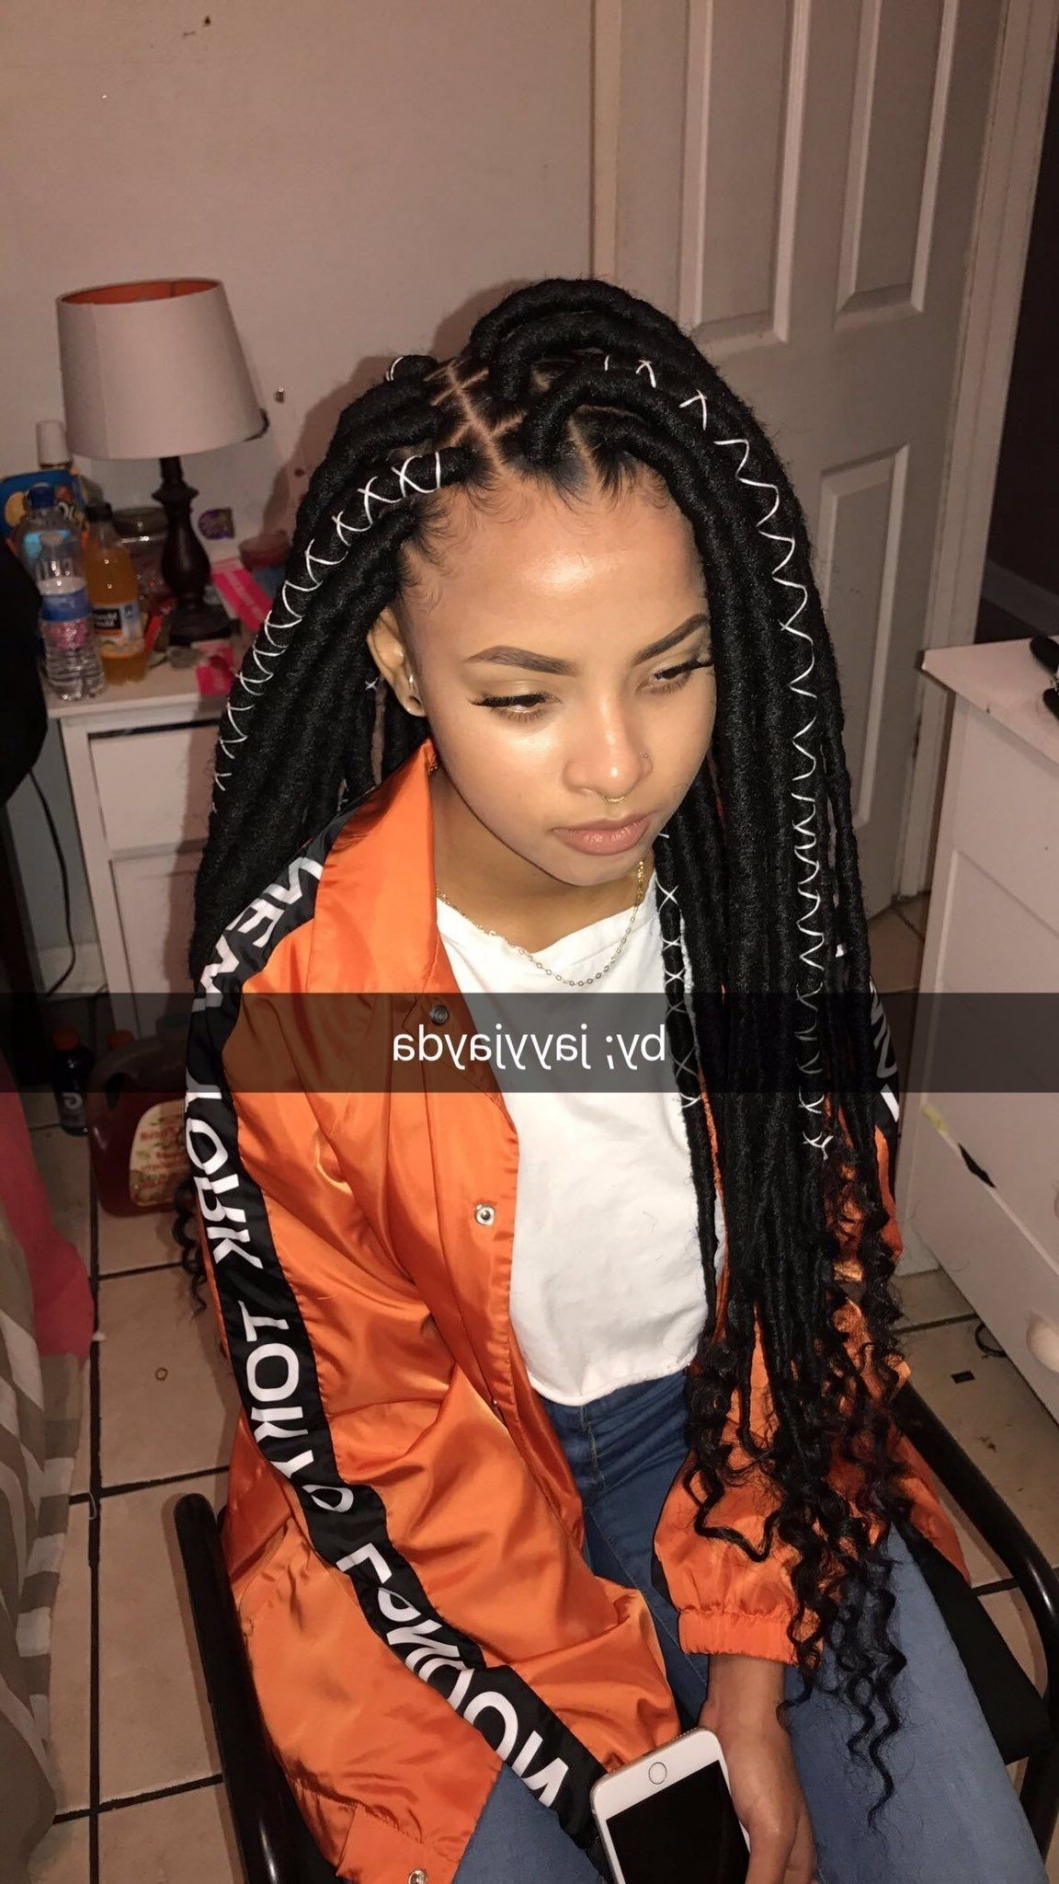 Unique Braided Hairstyles Black Hair 2016 New Feed In Braids Natural Pertaining To Well Known Feed In Braids Hairstyles (View 10 of 15)